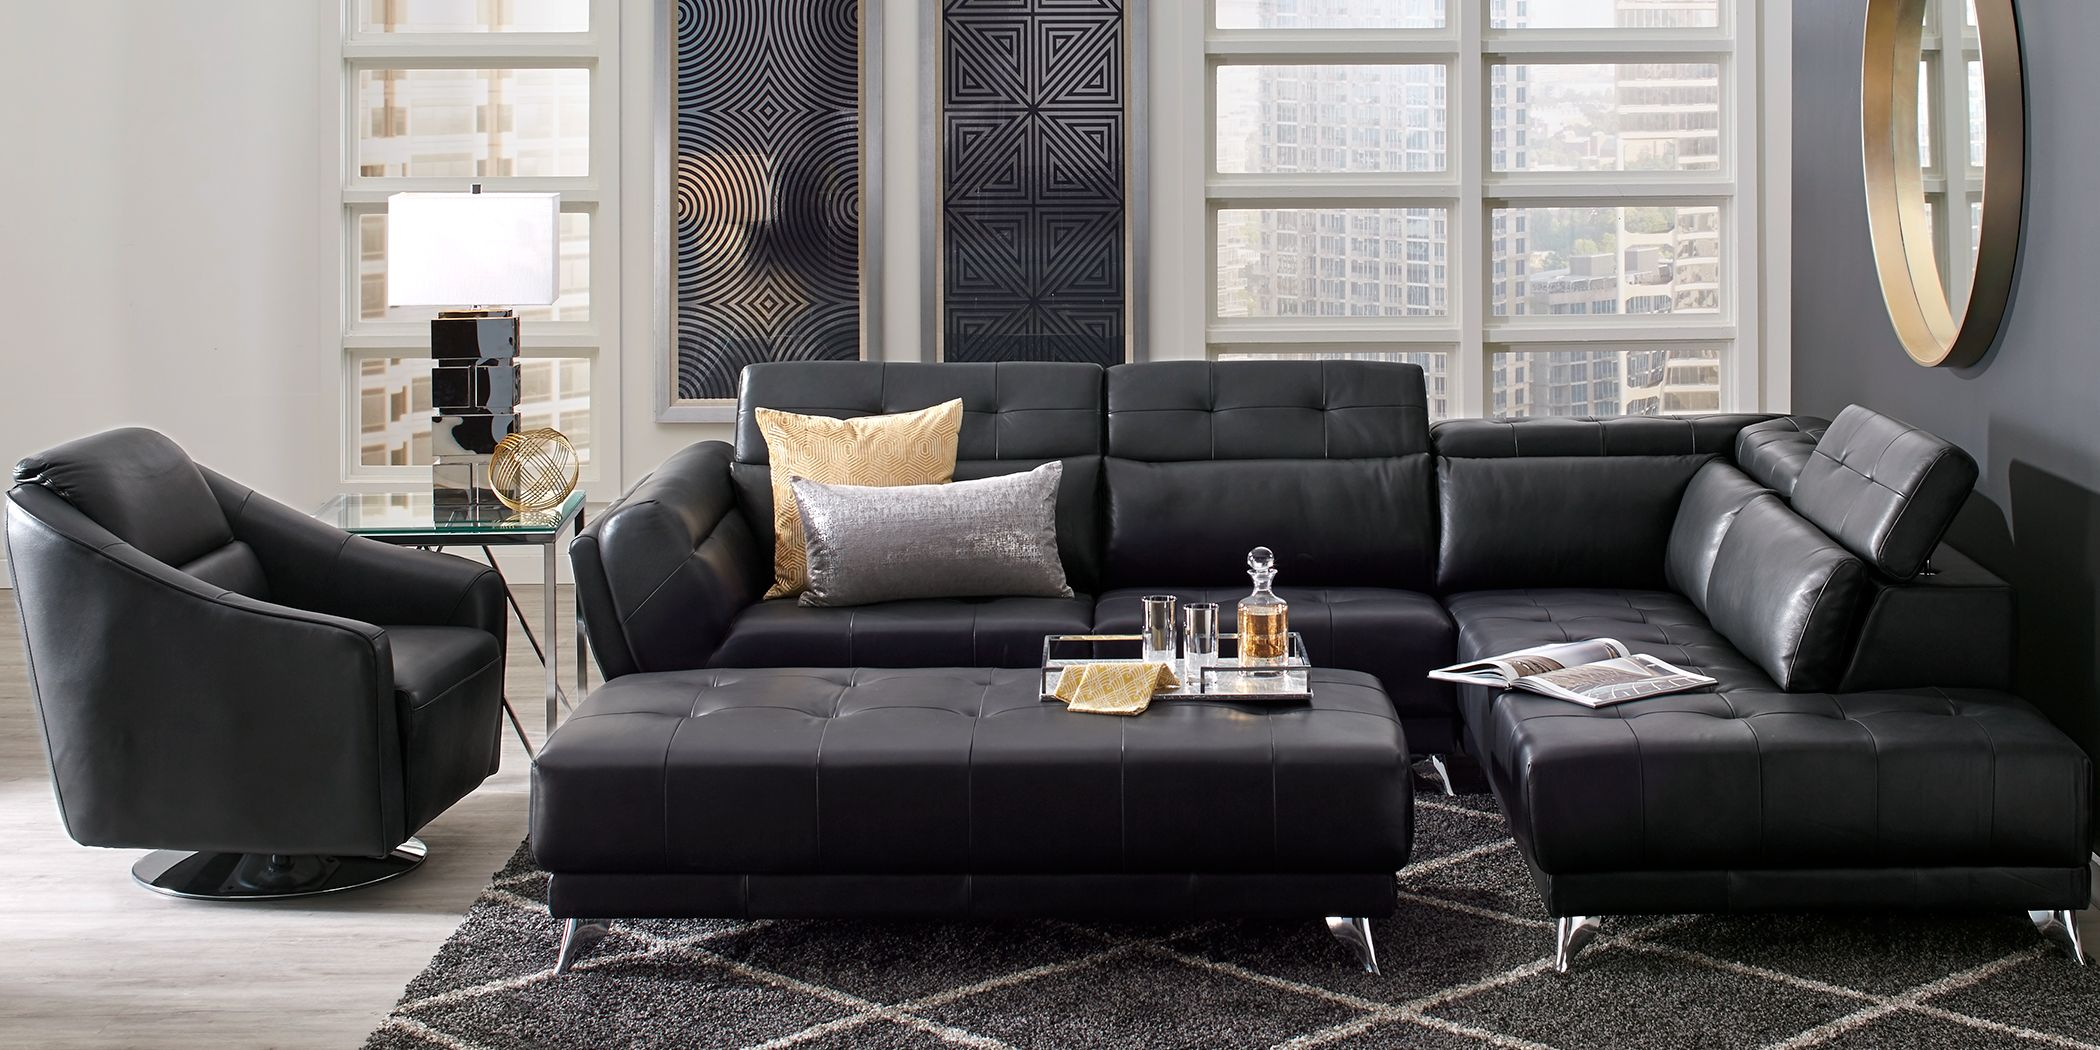 Commercial Office Paint Color Ideas, Dolcedo Black 5 Pc Leather Sectional Living Room Rooms To Go